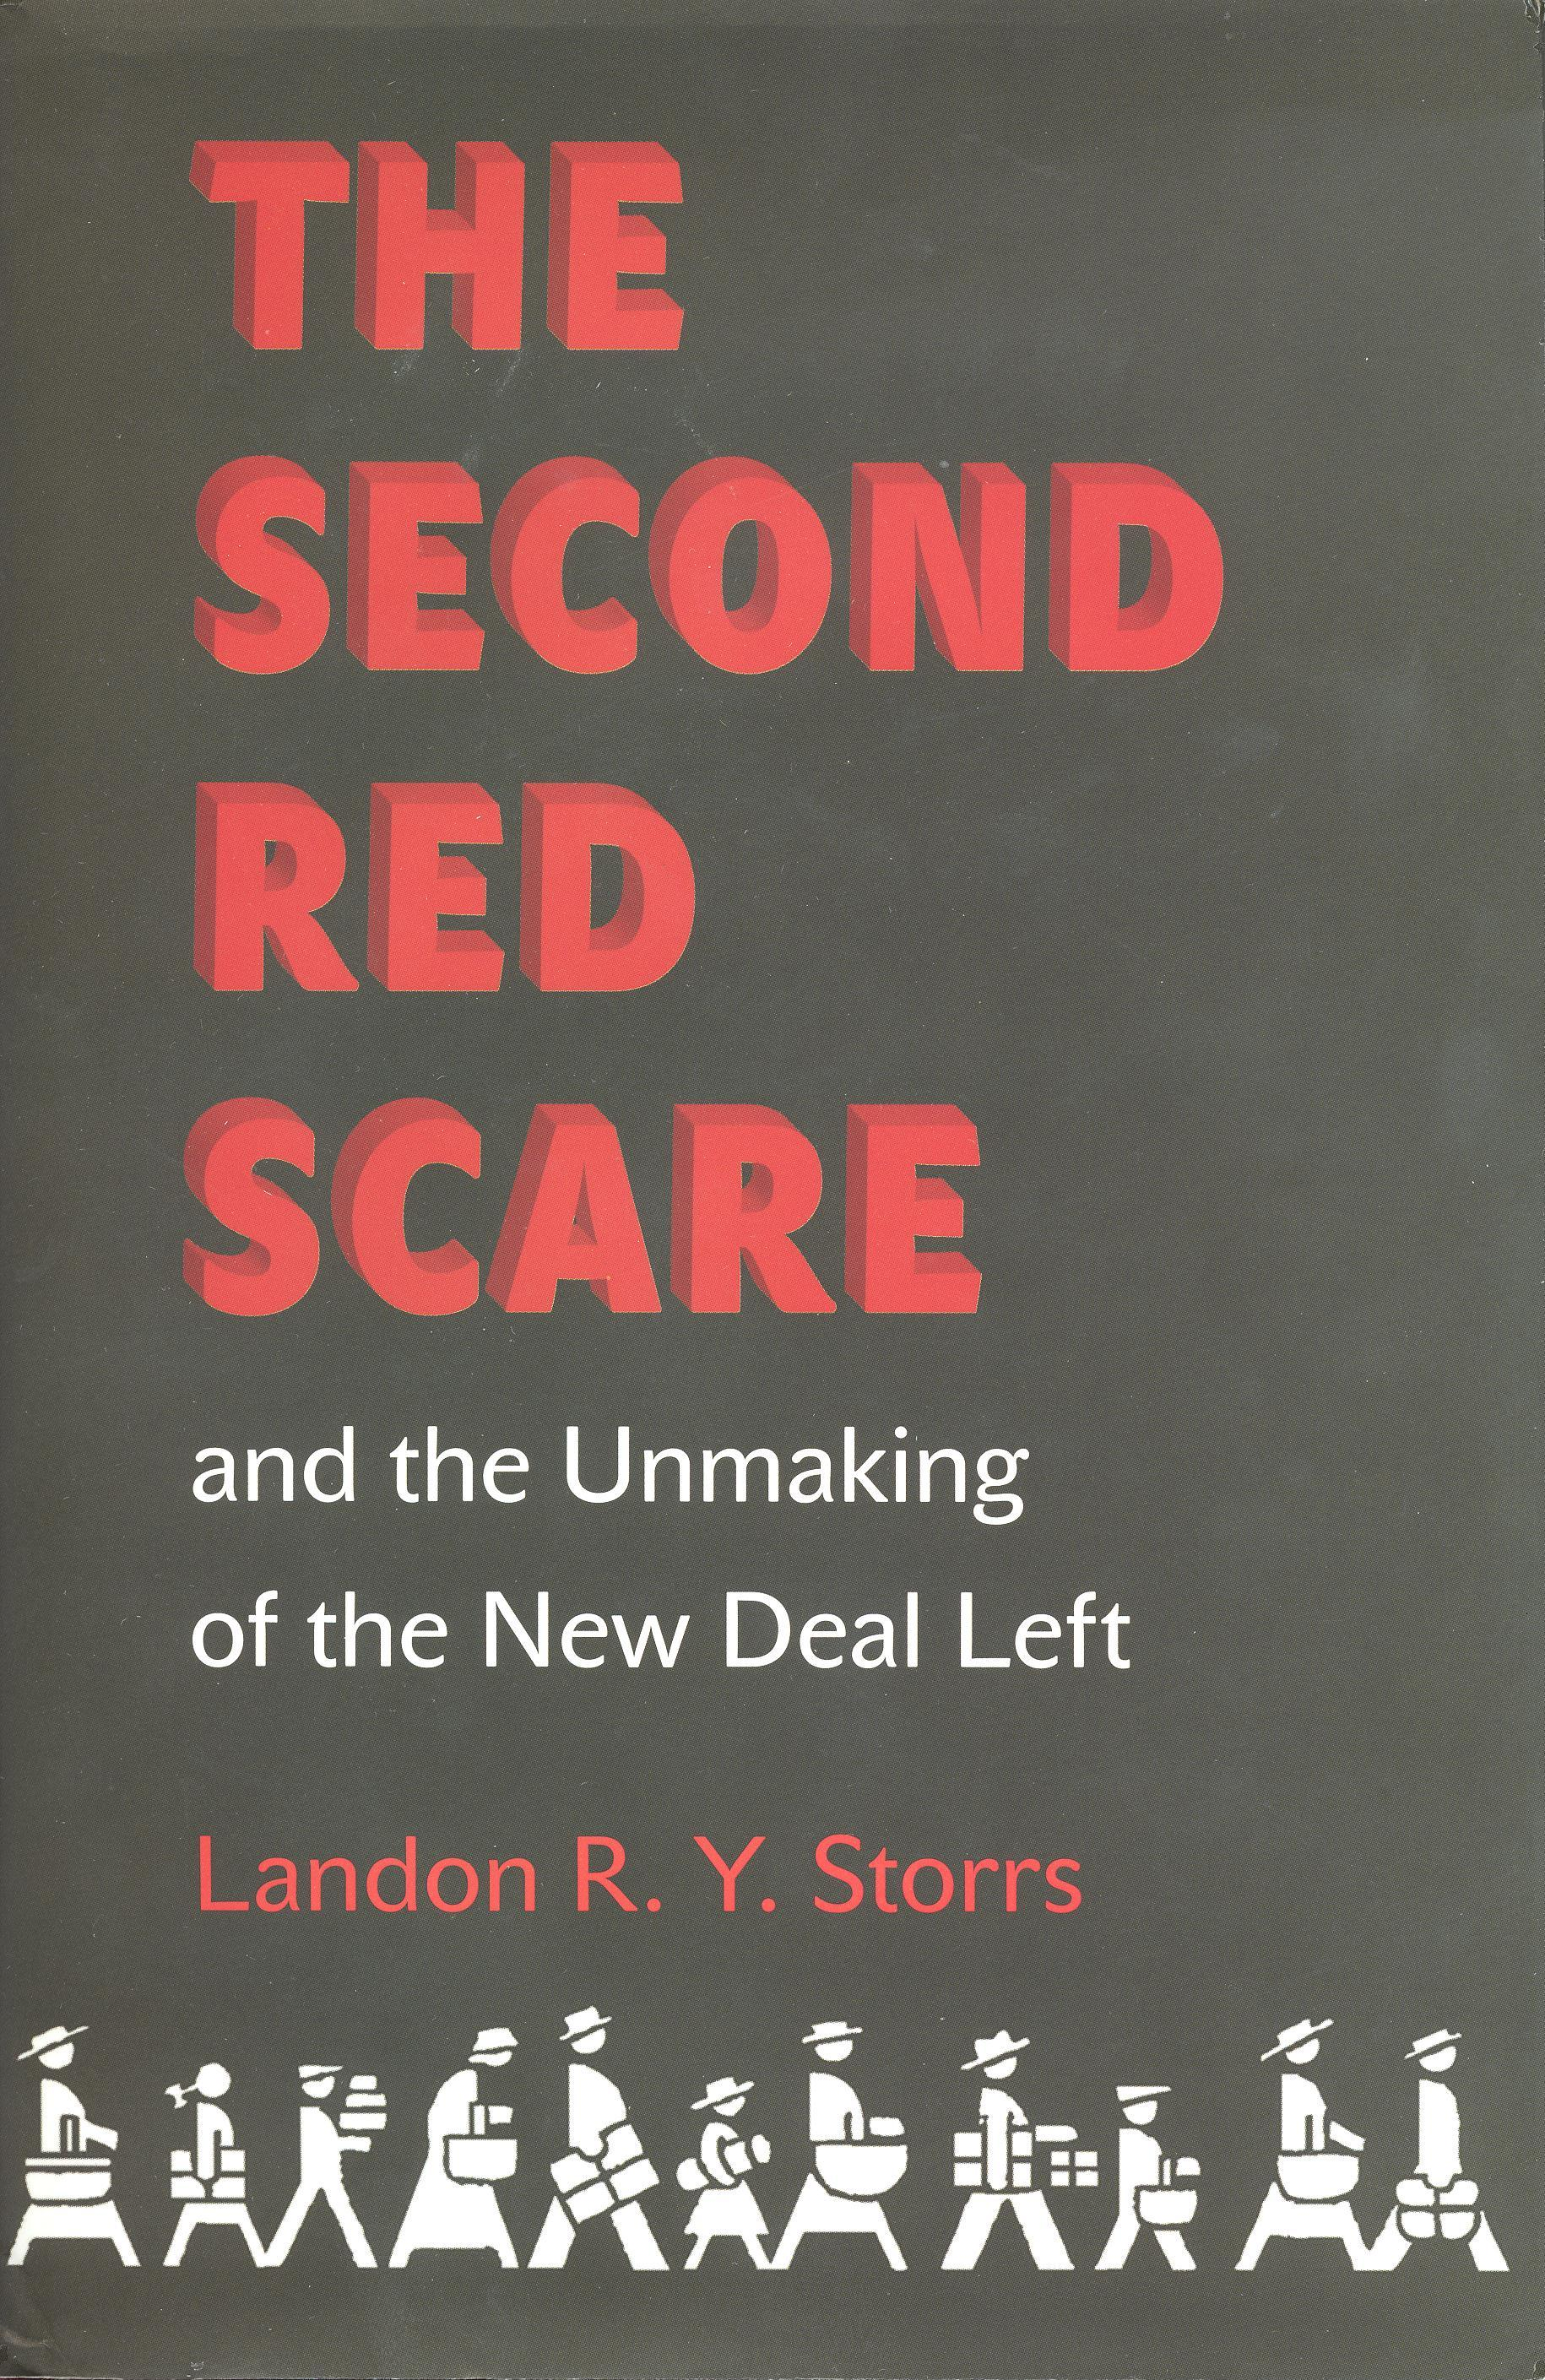 a research on the red scare The second red scare refers to the fear of communism that permeated american politics, culture, and society from the late 1940s through the 1950s, during the opening phases of the cold war with the soviet union.